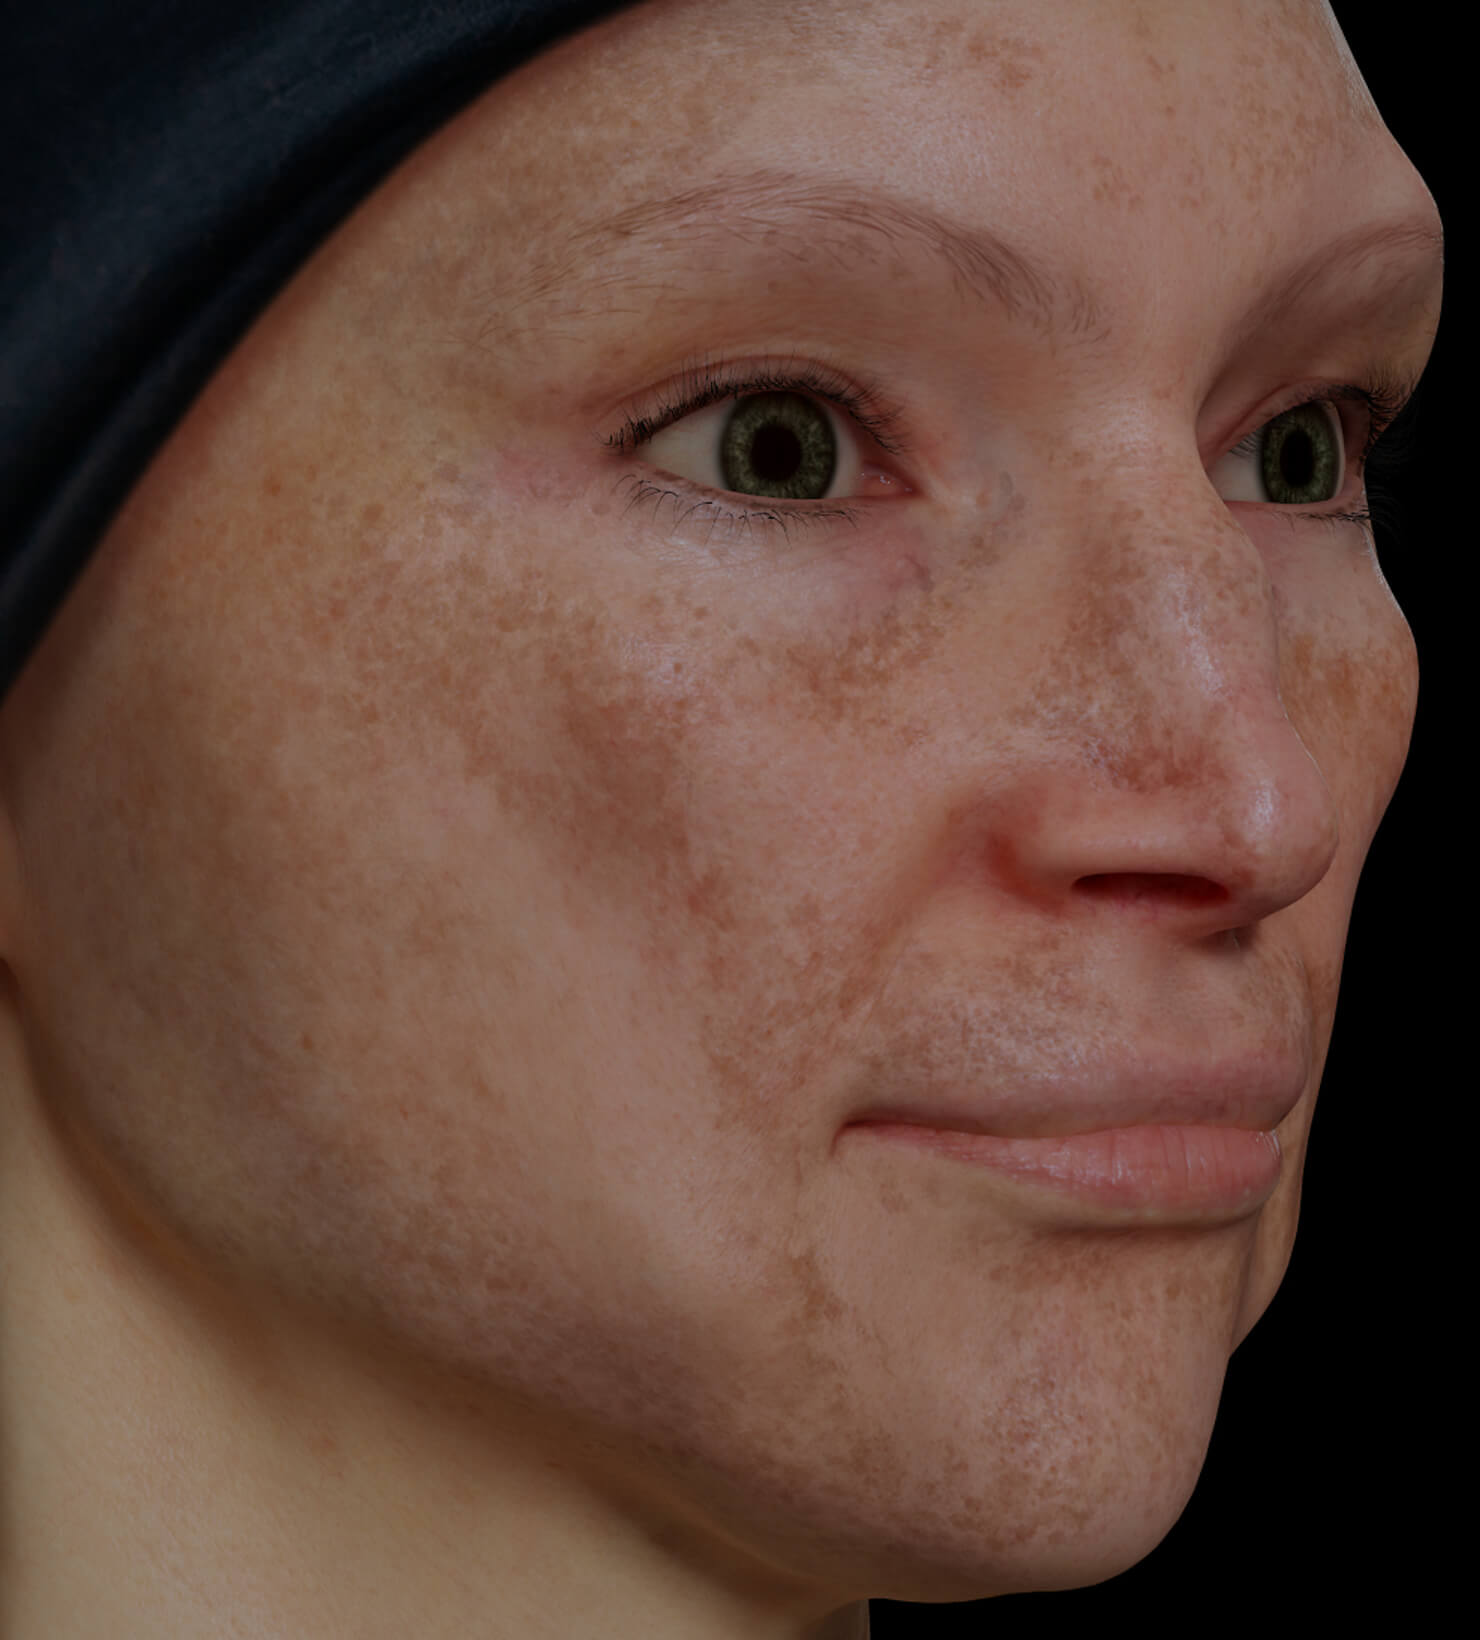 Clinique Chloé female patient with melasma on her face treated with the fractional laser